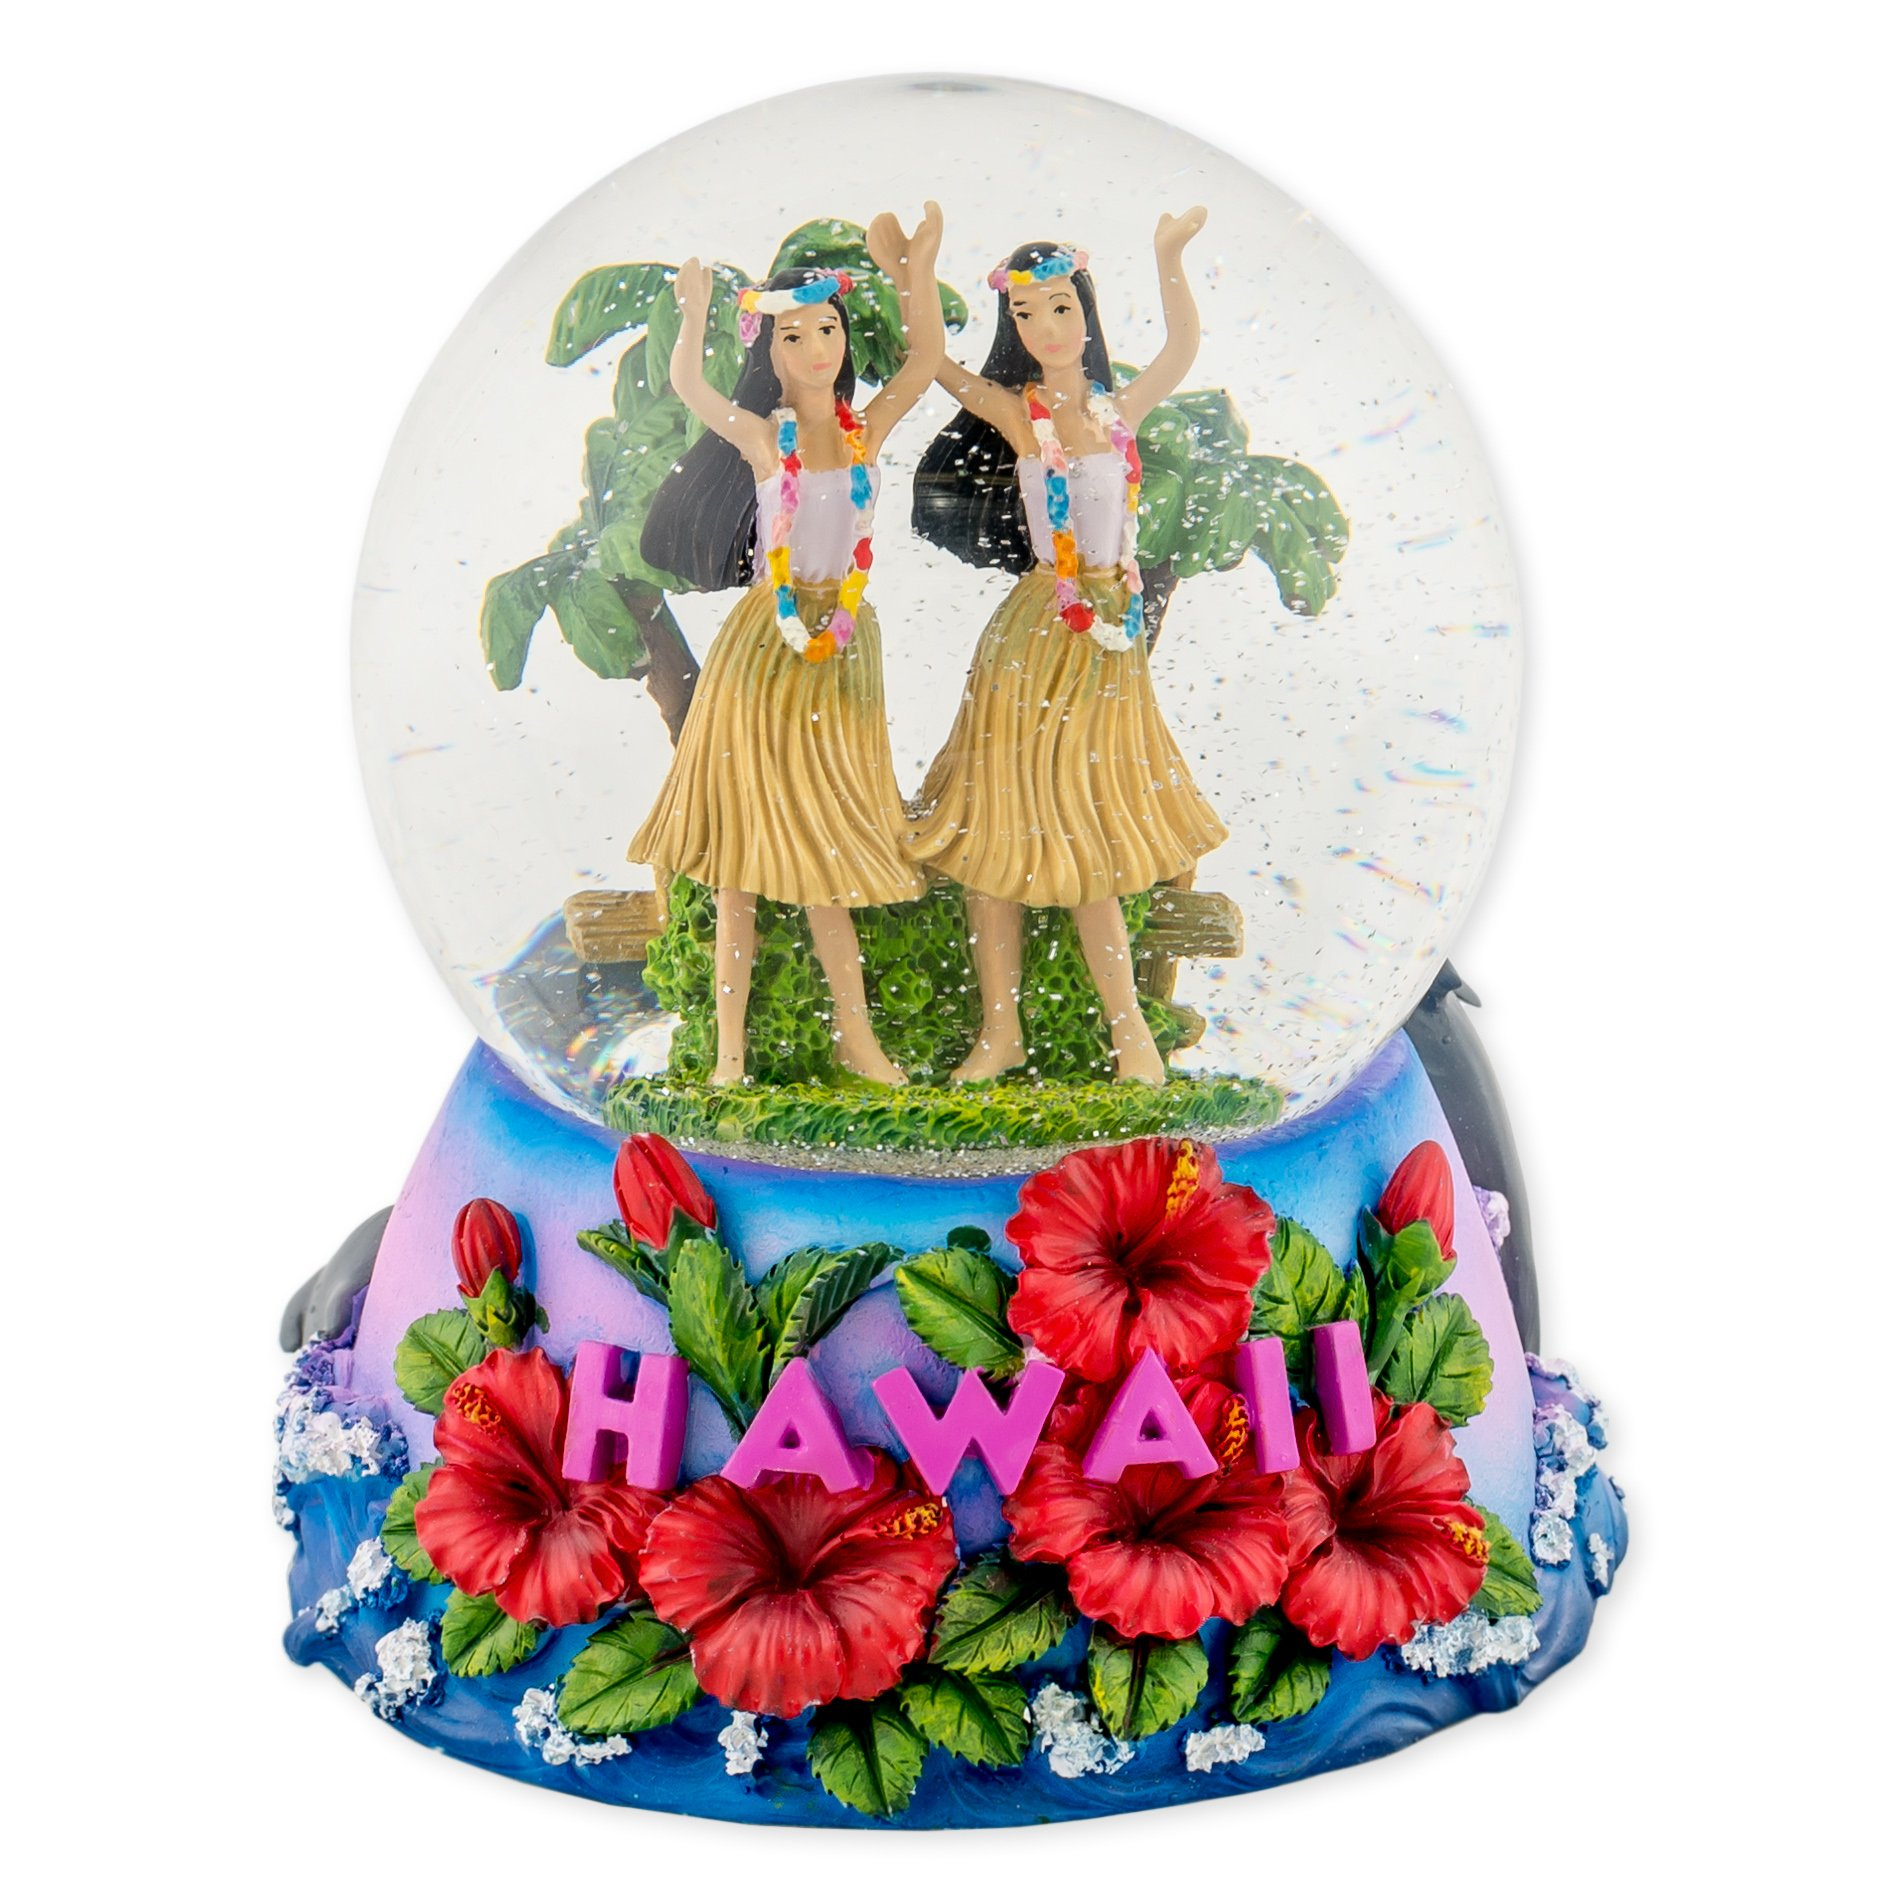 Hawaii Hula Girls 100mm Resin Glitter Water Globe Plays Tune Aloha